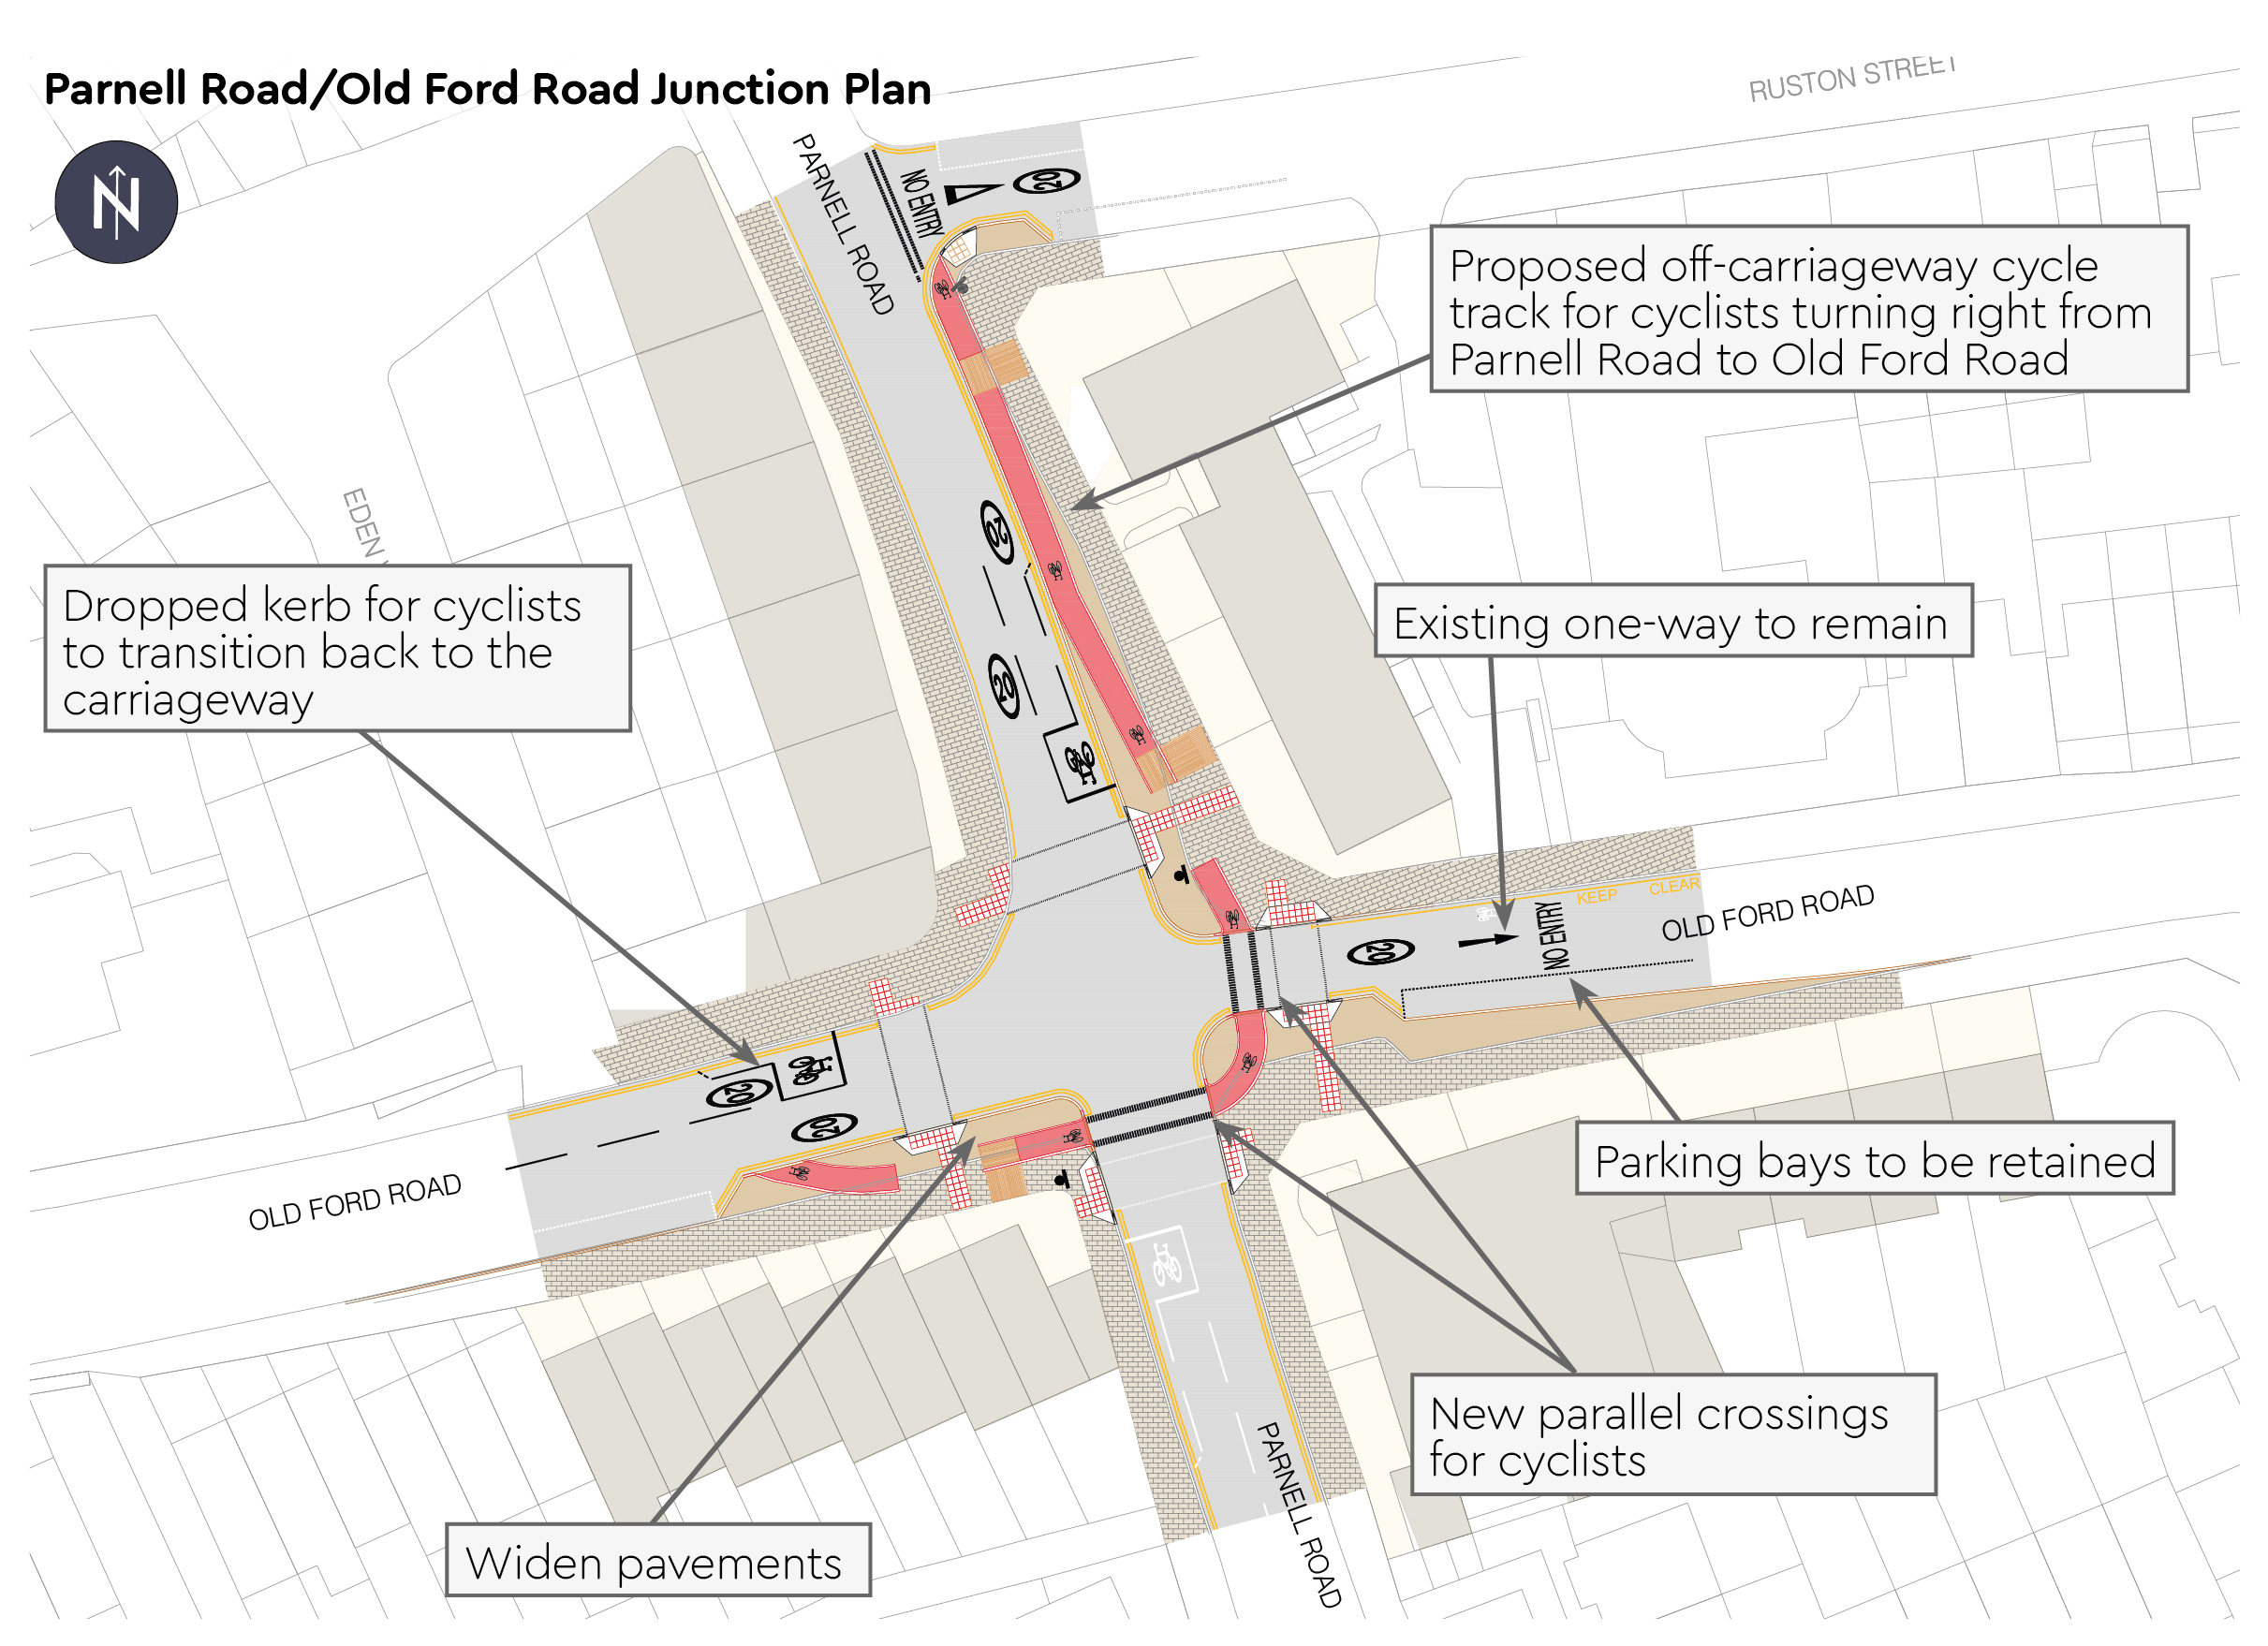 Parnell Road and Old Ford Road Junction Plan - Dropped kerb for cyclists back to carriageway on Old Ford Road - New parallel crossings for cyclists at junction